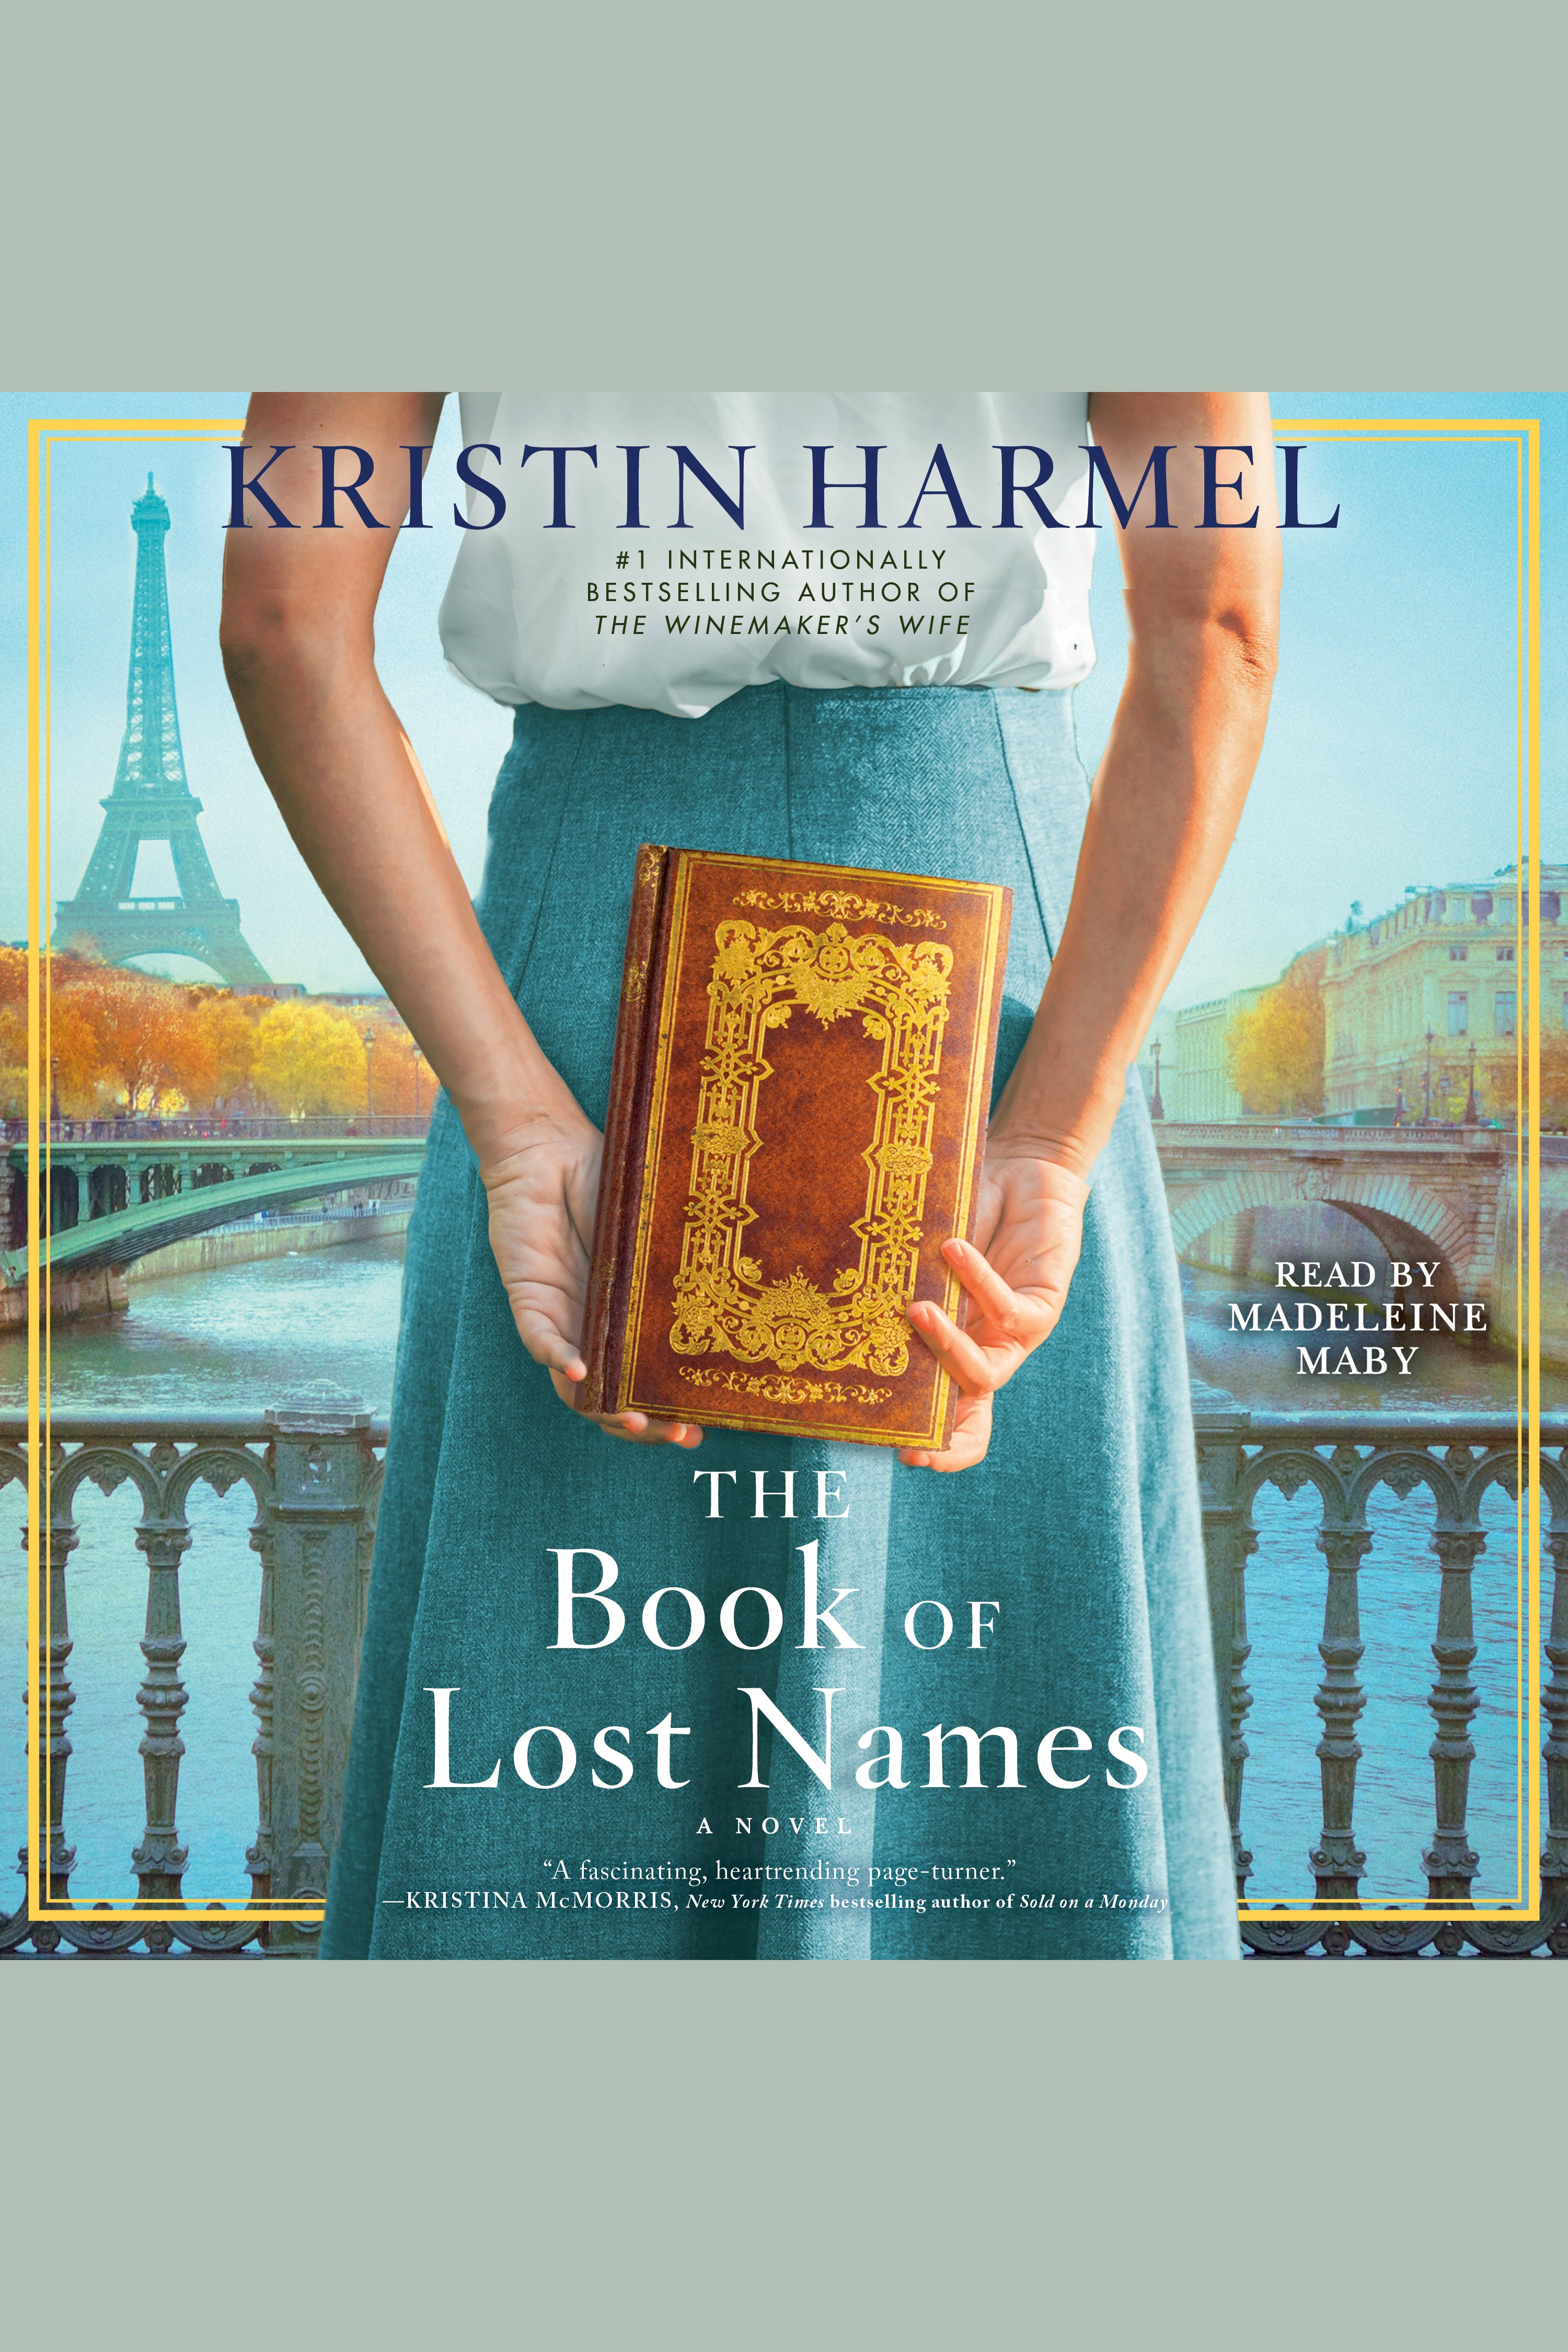 Book of Lost Names, The